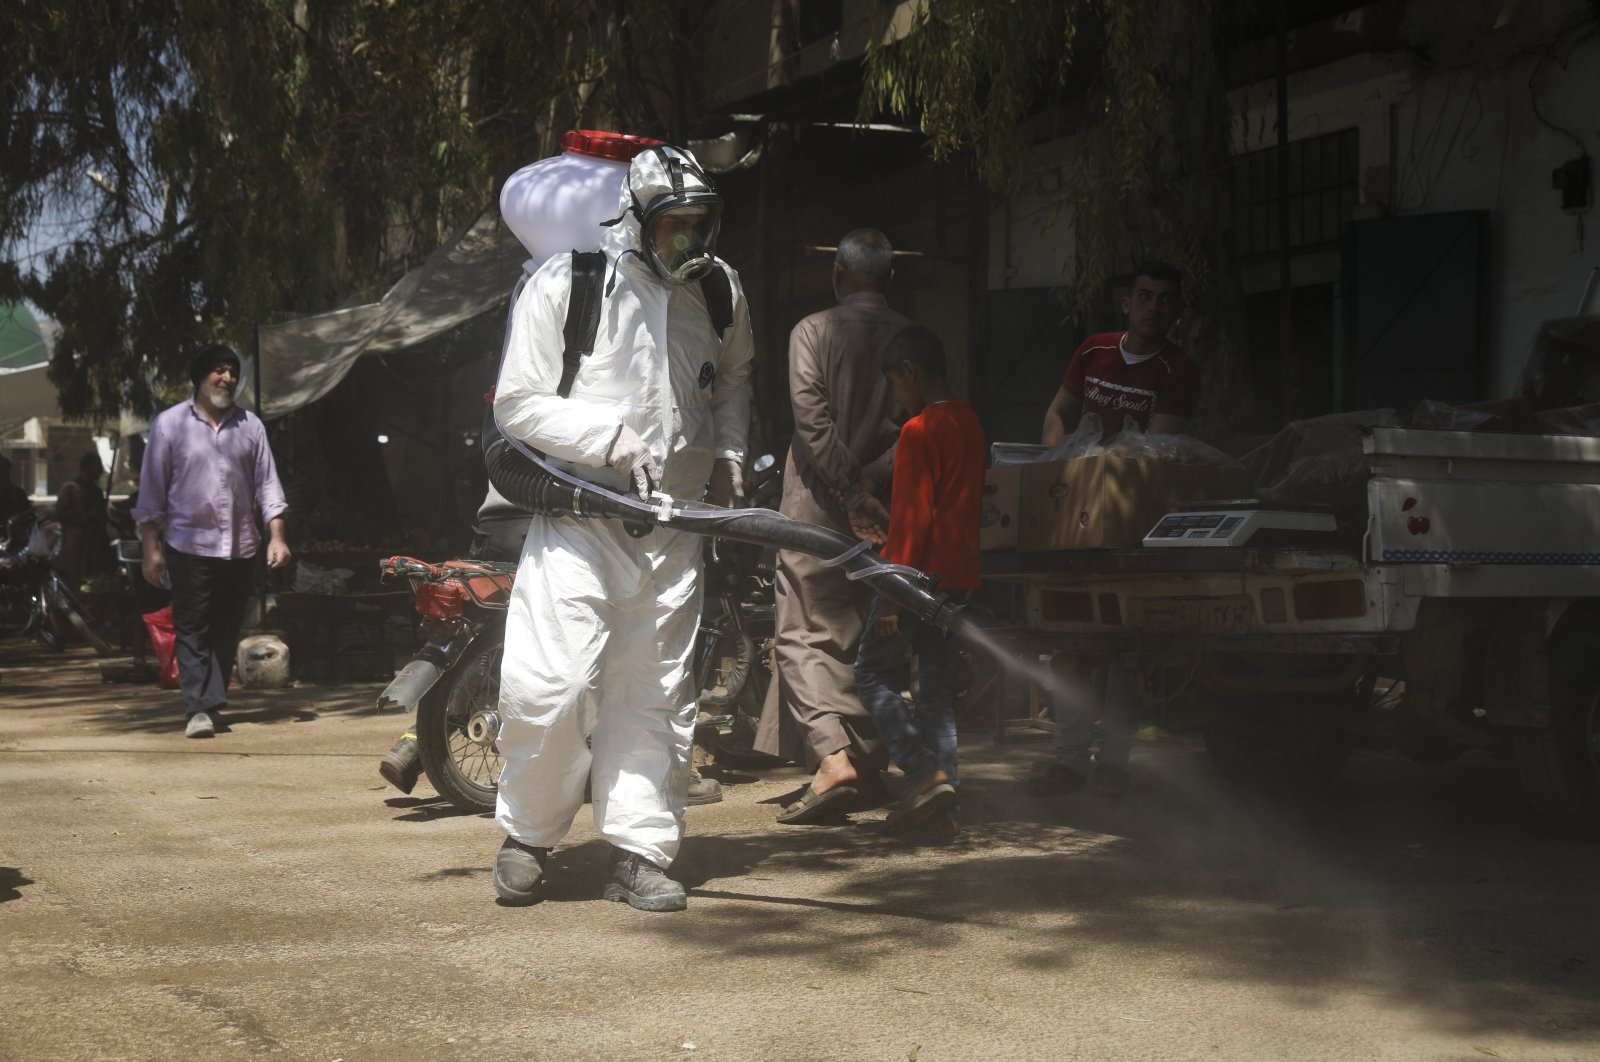 A member of a nongovernmental aid organization sprays disinfectant as a preventative measure against the coronavirus in the town of Armanaz, Idlib province, Syria, April 14, 2020. (AP Photo)